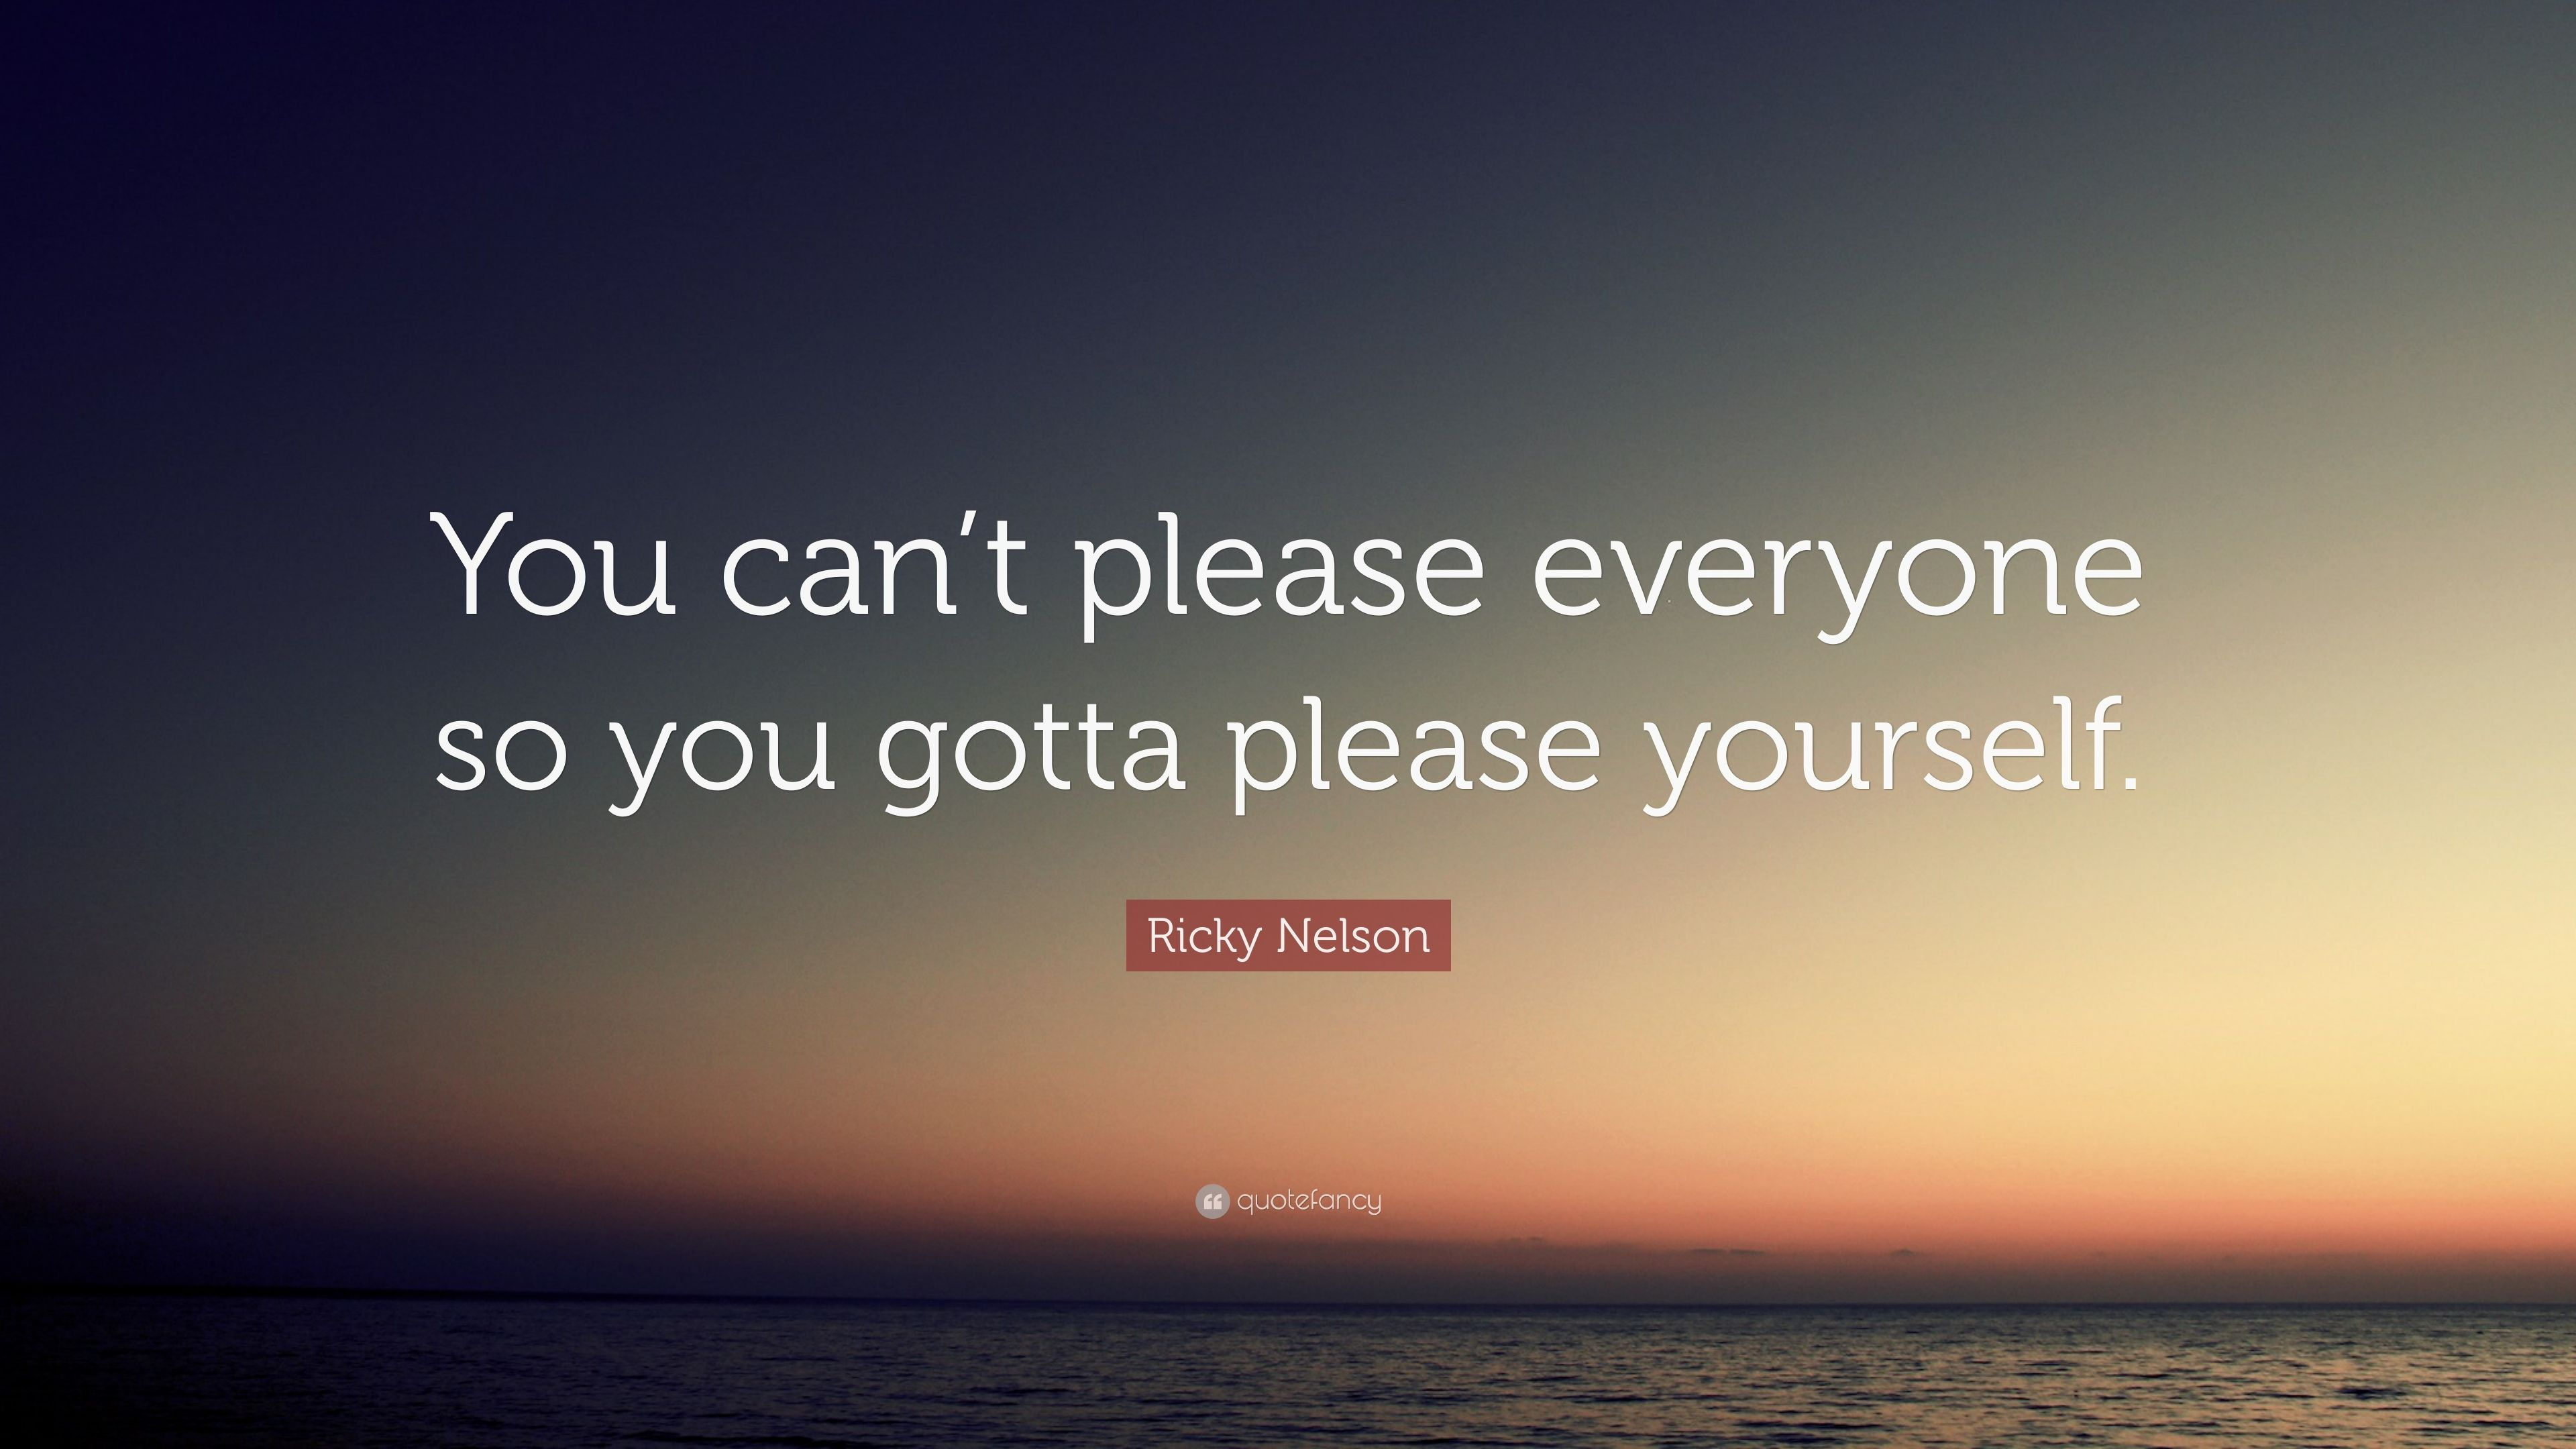 ricky nelson quote   u201cyou can u2019t please everyone so you